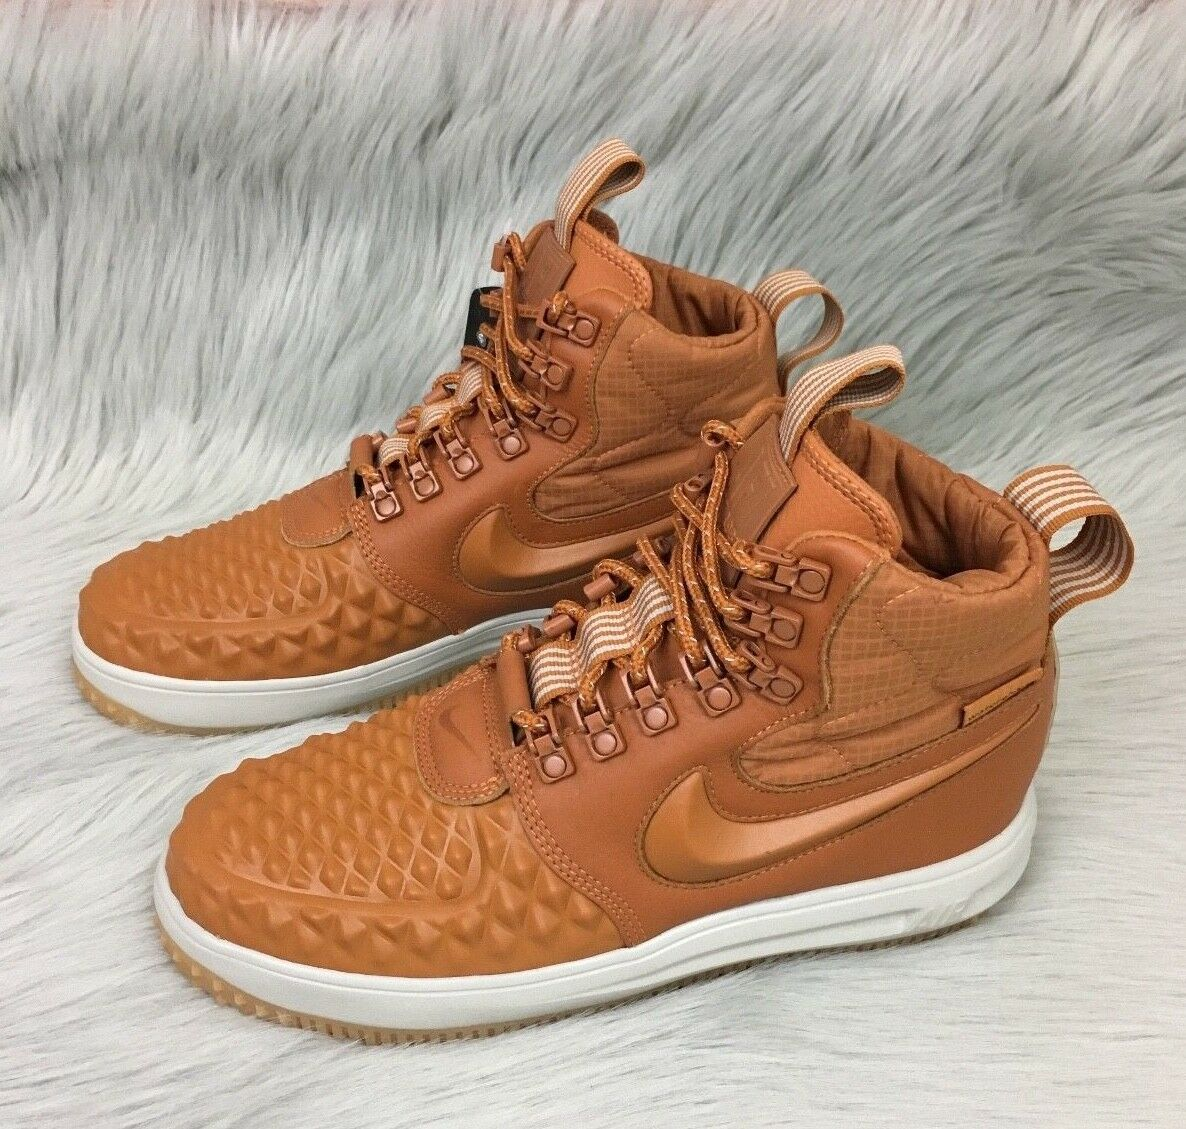 New Nike Lunar Force 1 Duckboot Shoes (Size 7.5)